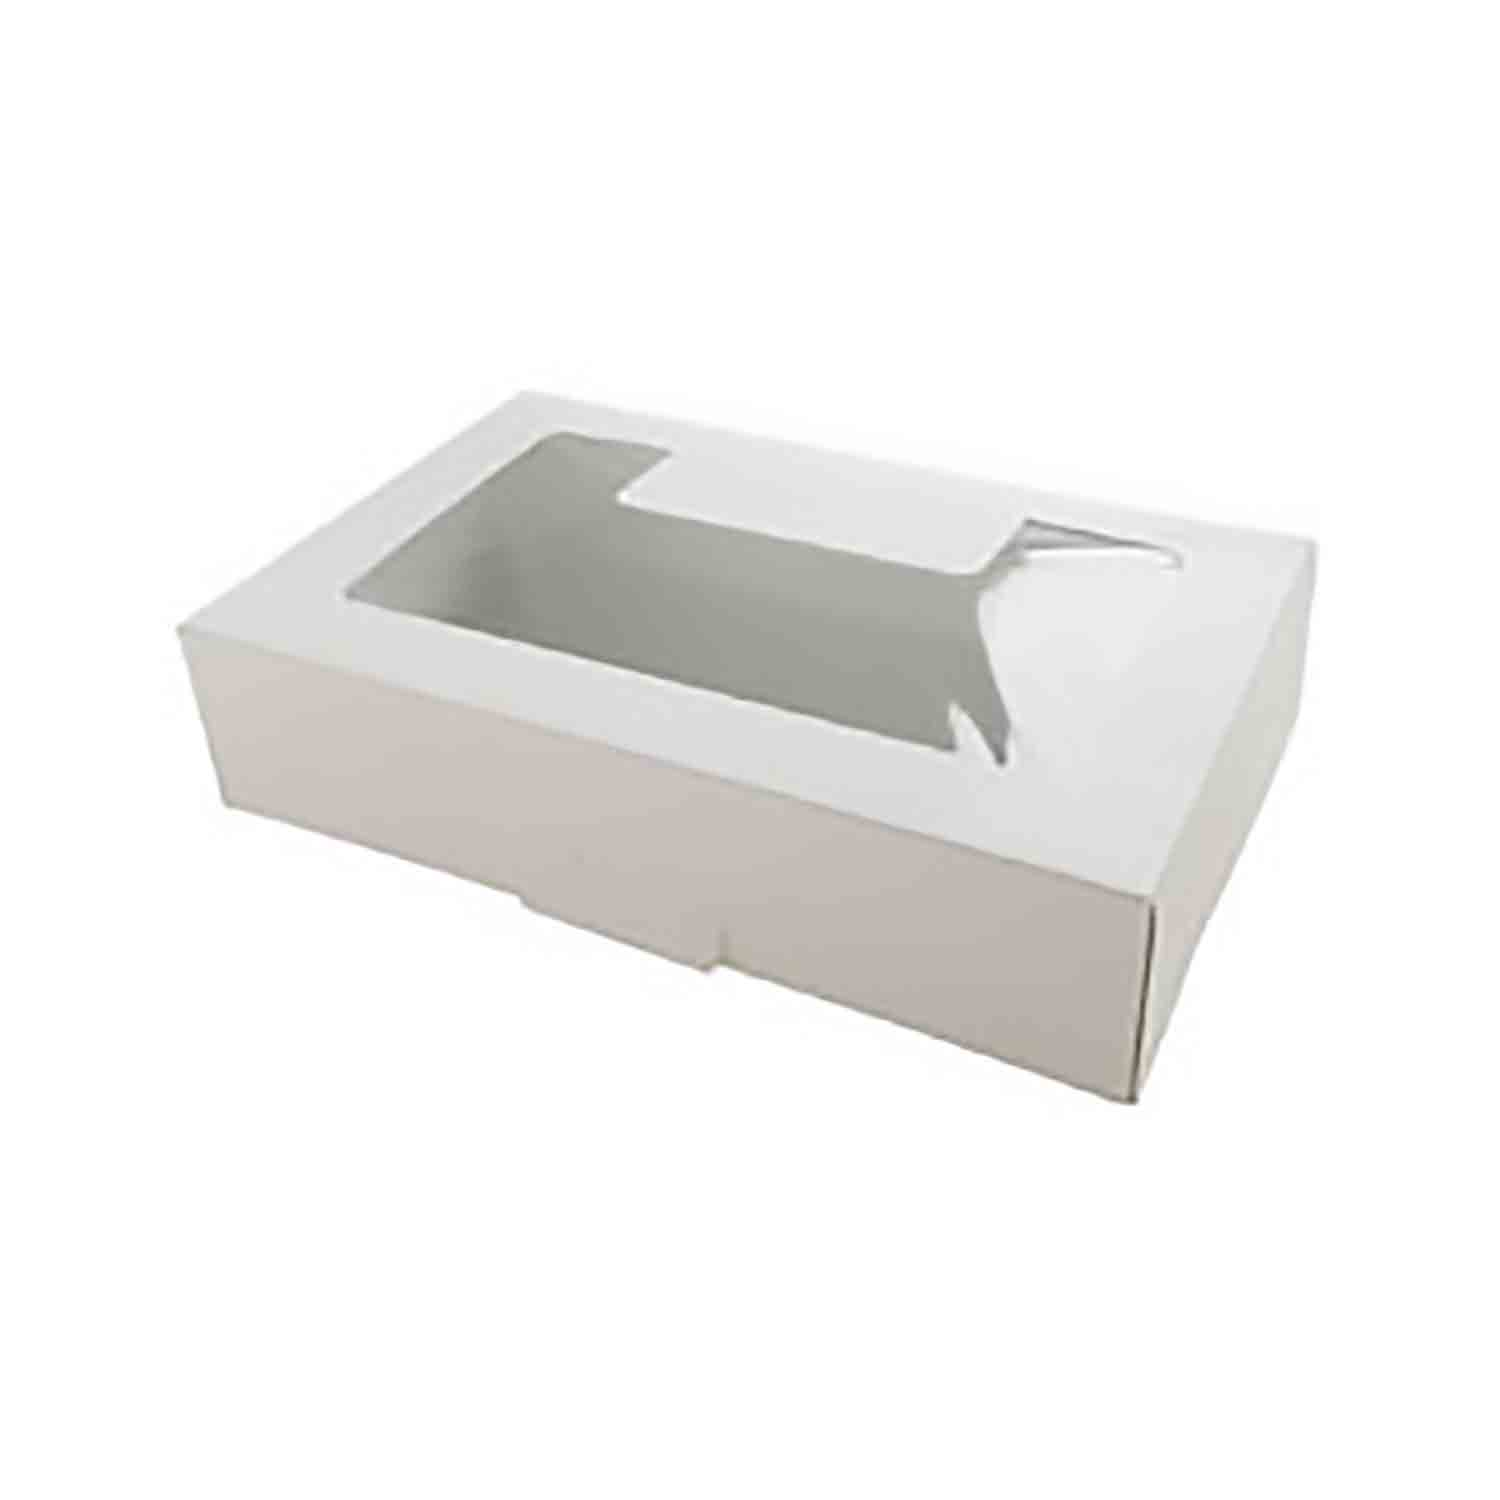 1/2 lb. White Cookie Box with Window